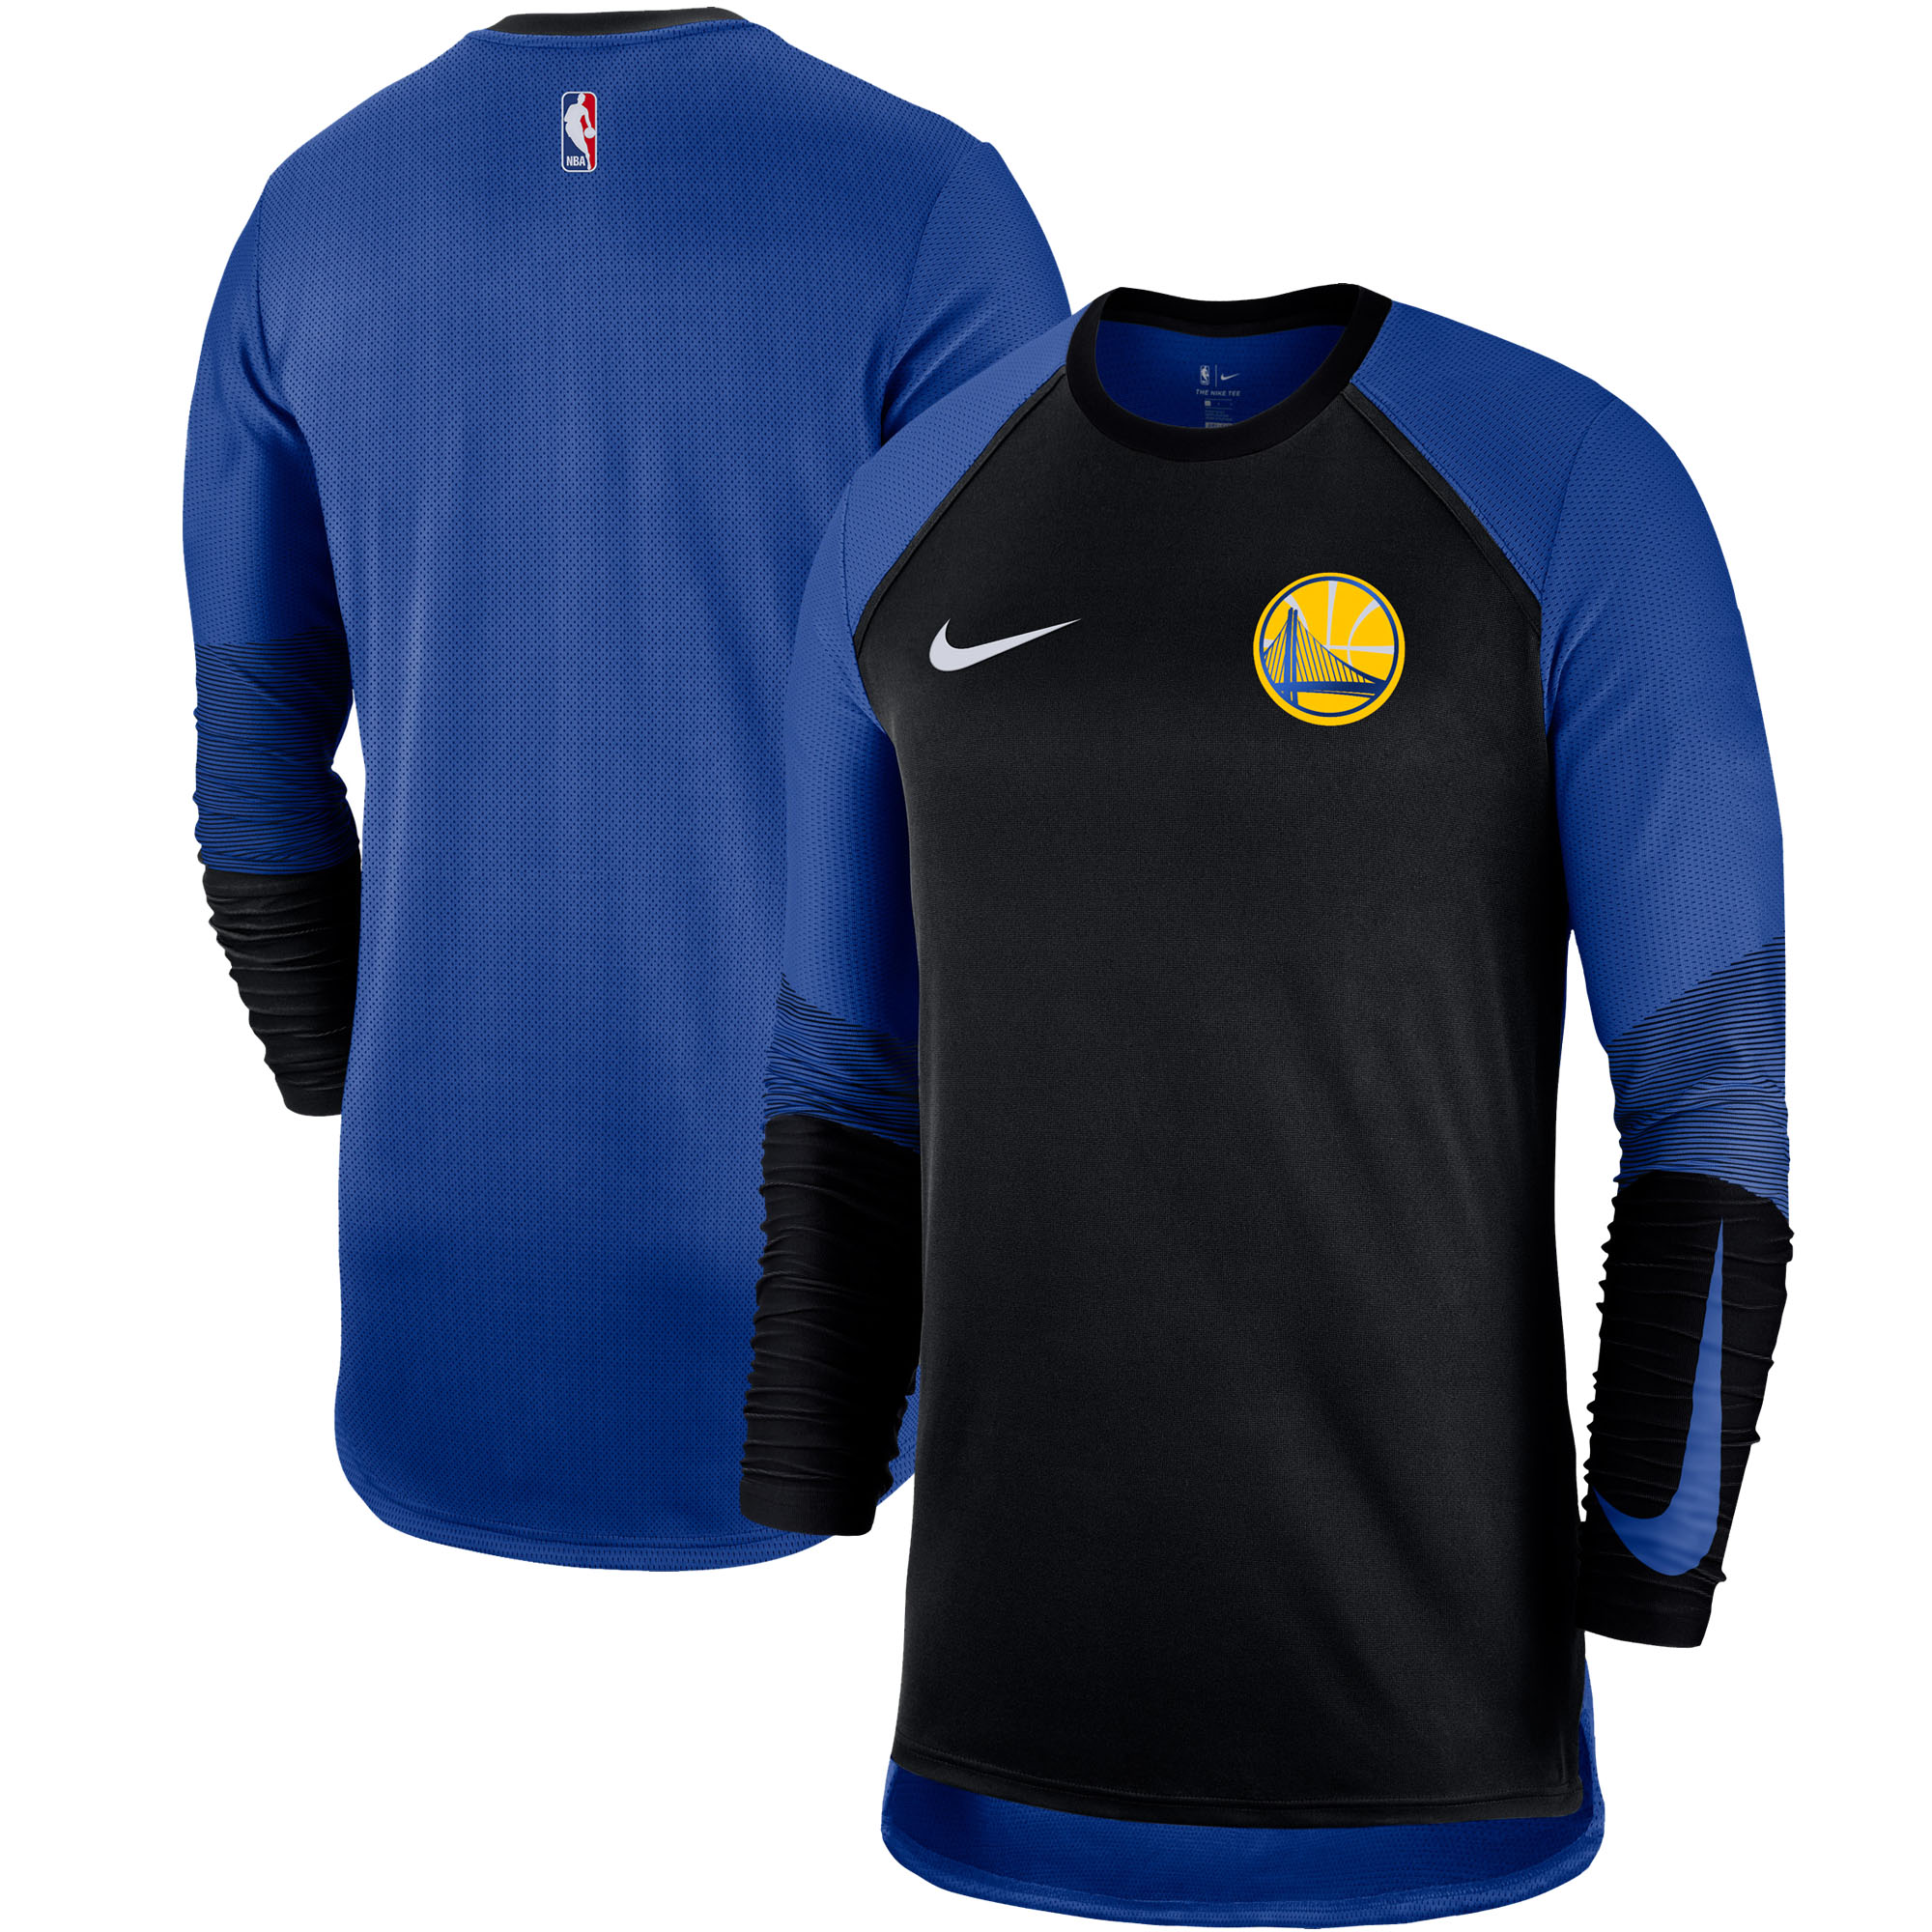 Golden State Warriors Nike Hyper Elite Performance Long Sleeve Shooting T-Shirt - Black/Royal